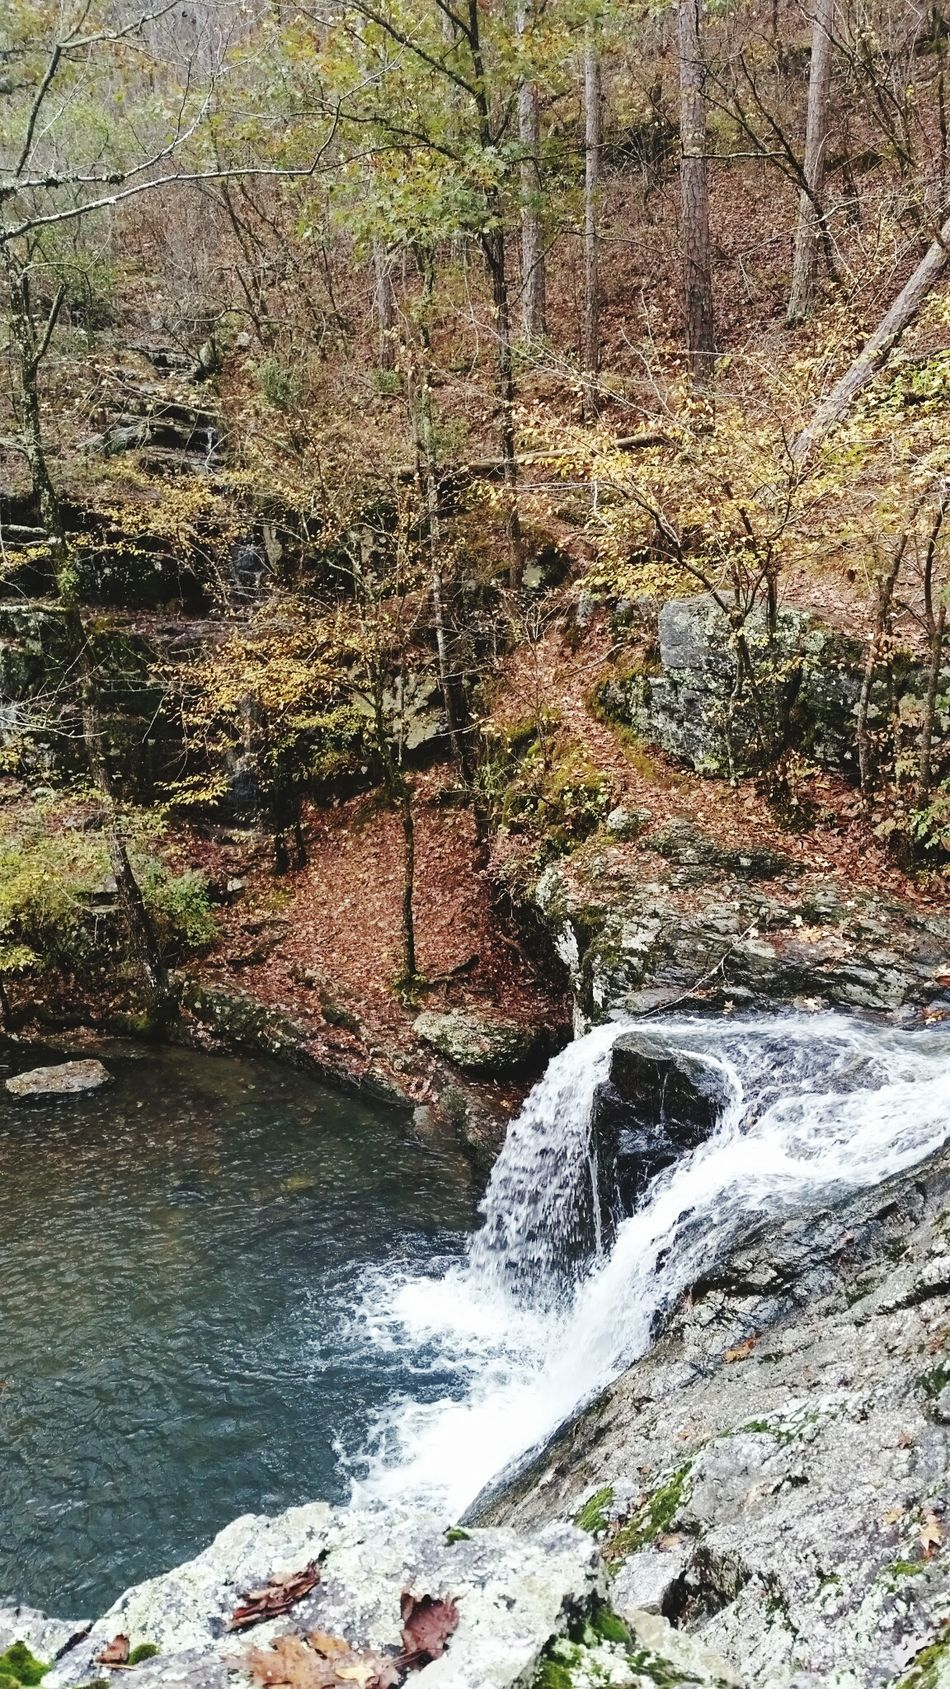 The Great Outdoors With Adobe Lake Catherine Arkansas Hanging Out Taking Photos Check This Out Hello World Enjoying Life Outdoors Relaxing Outdoor Photography Water Stream Creek Waterfall